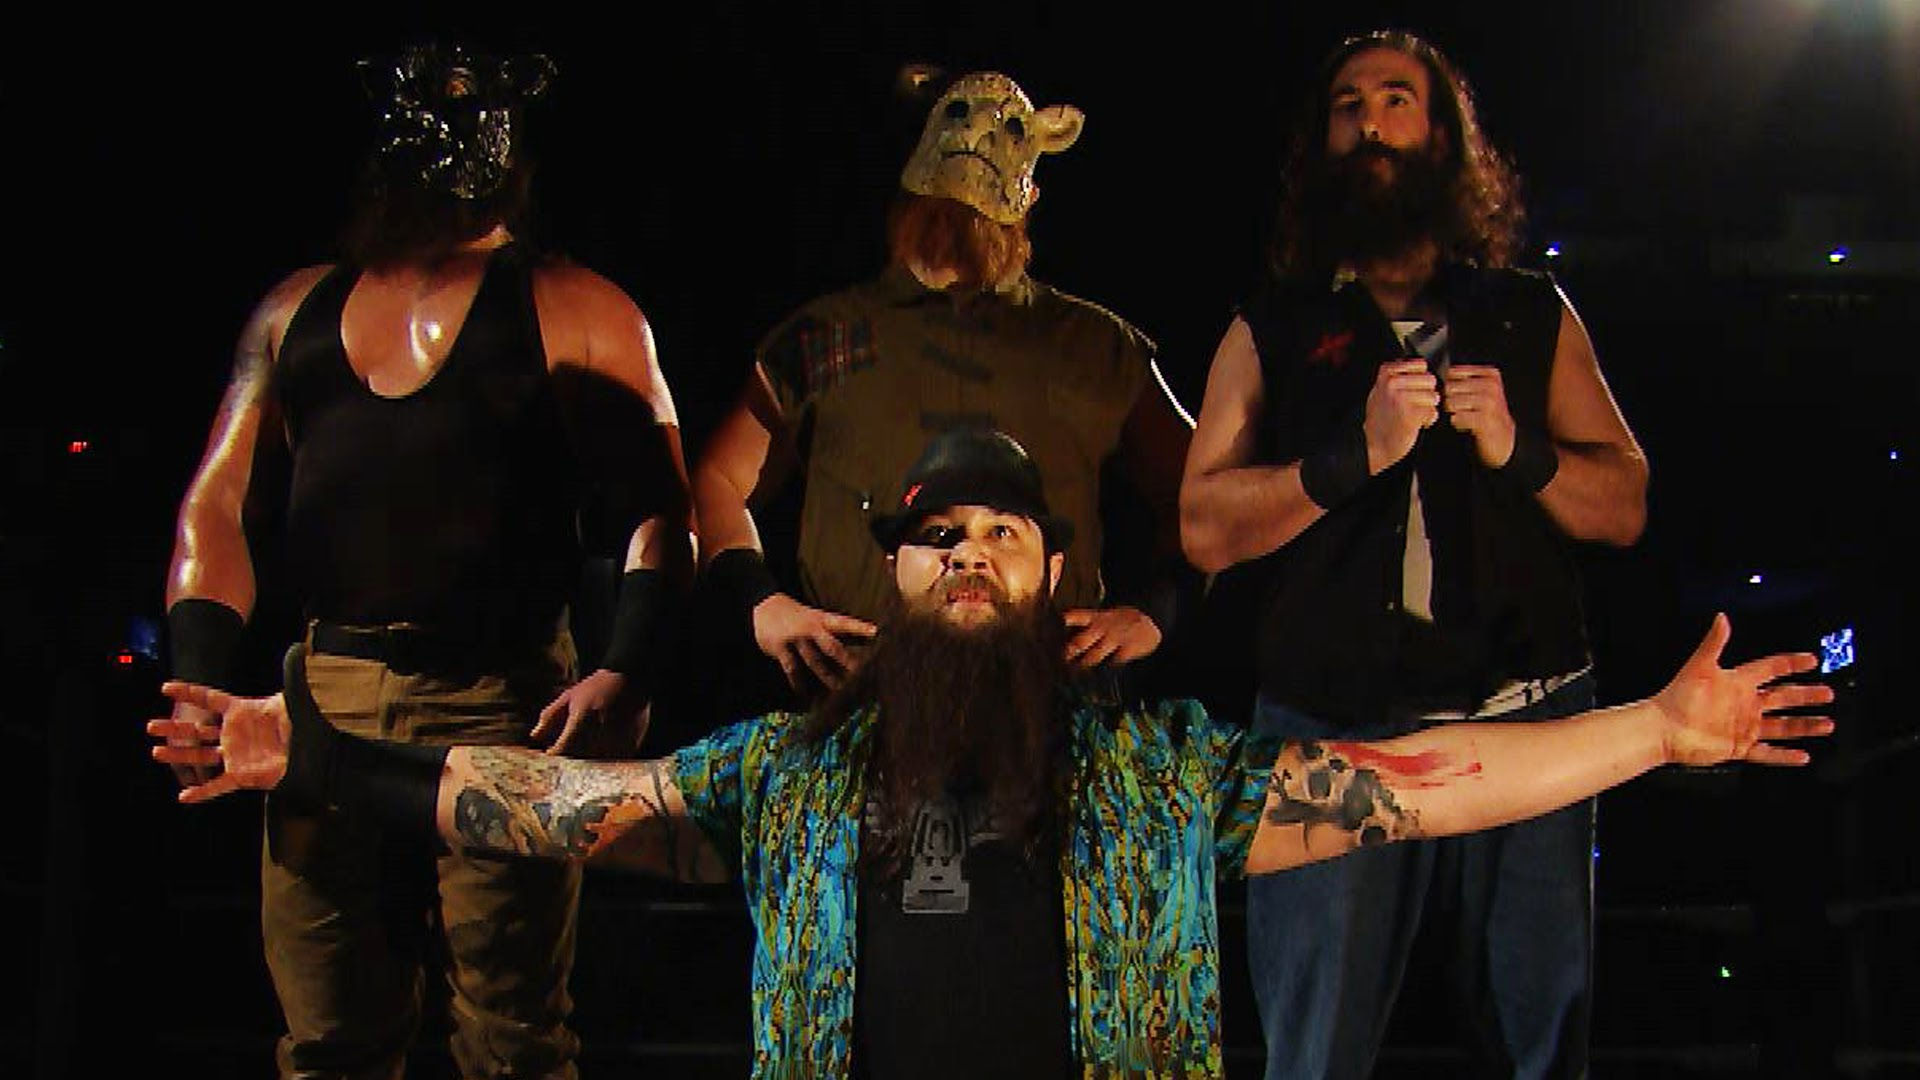 Wwe Teasing More Wyatt Family Vs League Of Nations Action On Raw Latest On Gallows And Anderson Stillrealtous Com